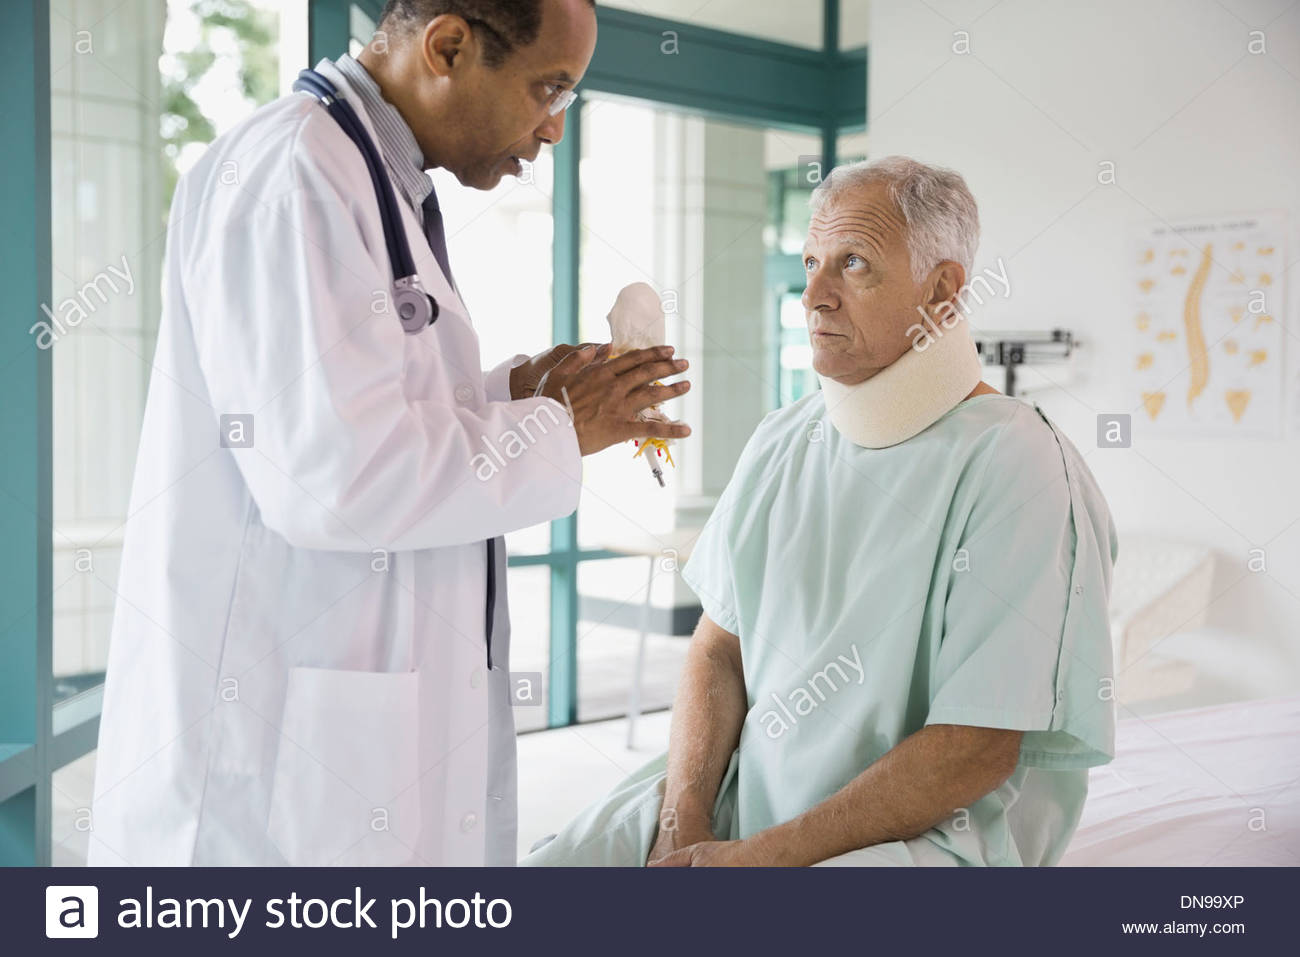 Doctor explaining model to patient suffering from neck pain - Stock Image